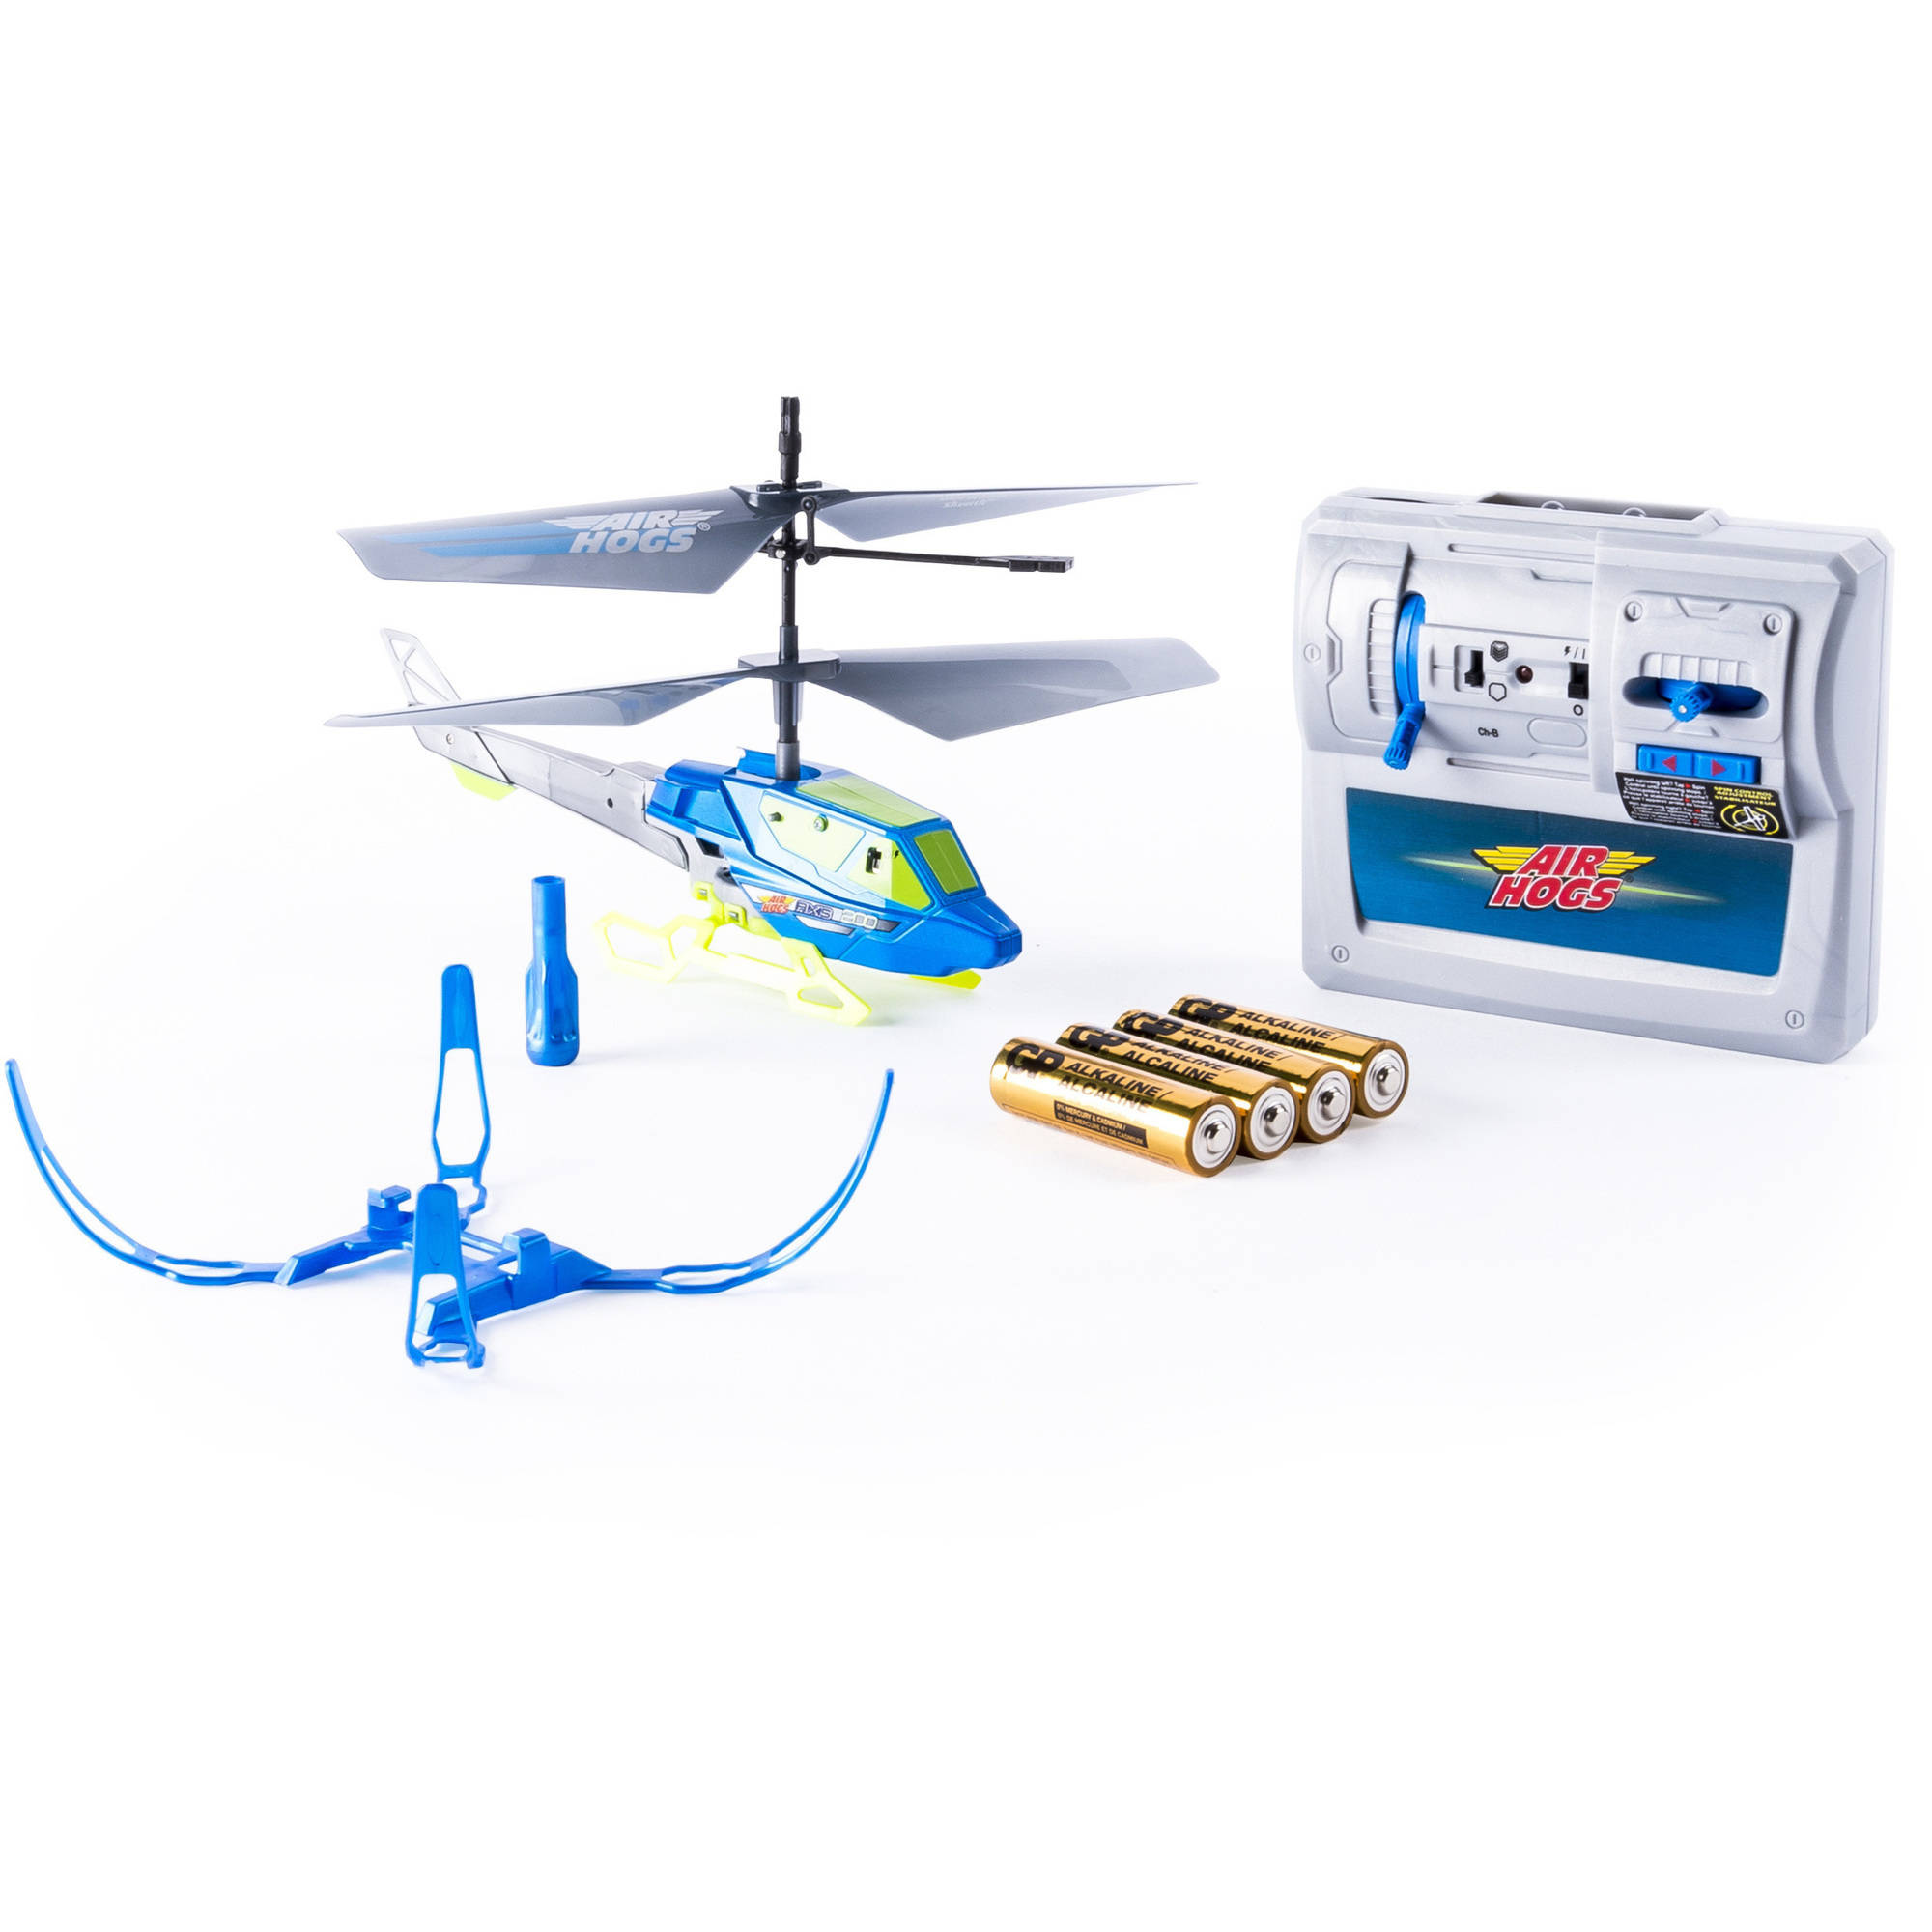 Air Hogs Axis 200 RC Helicopter with Batteries, Blue by Spin Master Ltd